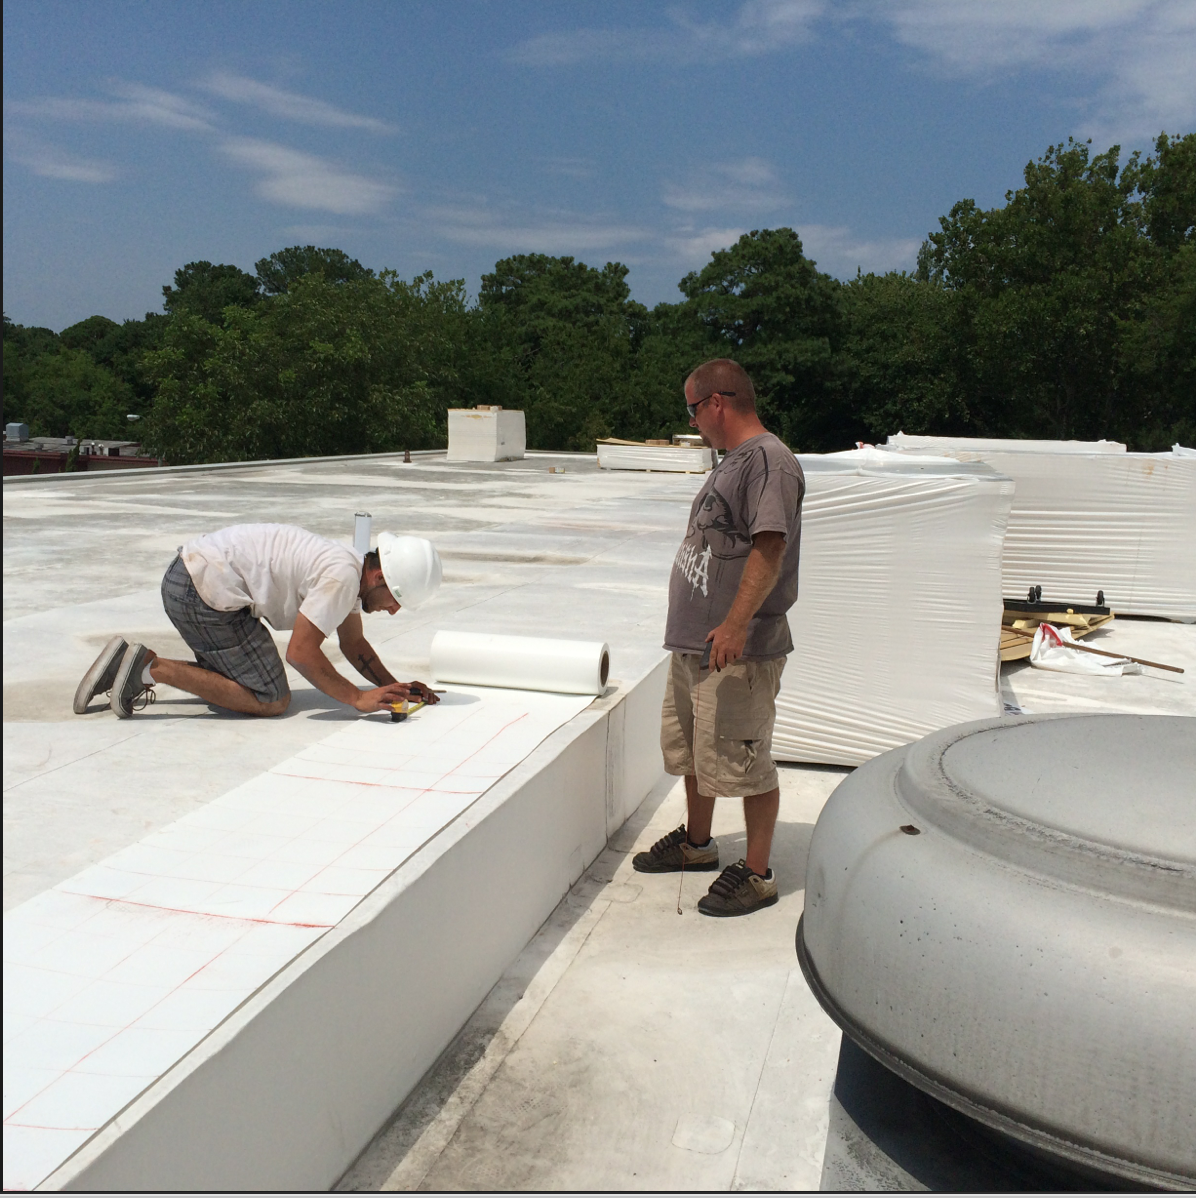 flat roof repair roofing contractor suffolk norfolk virginia beach chesapeake